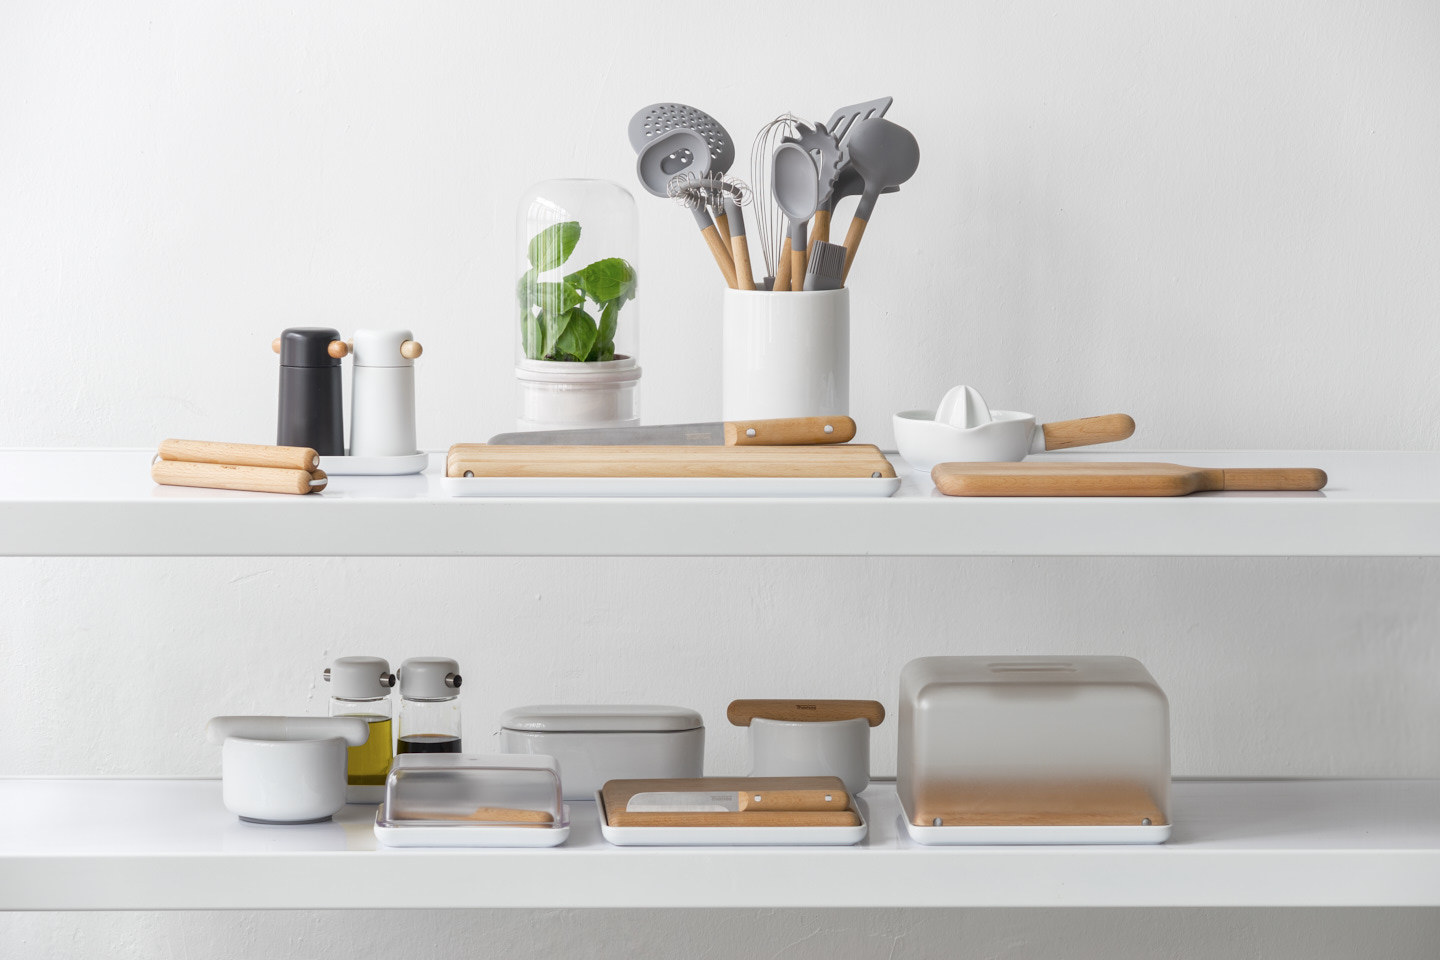 Kitchenware_Collection_by_OfficeforProductDesign_W01.jpg